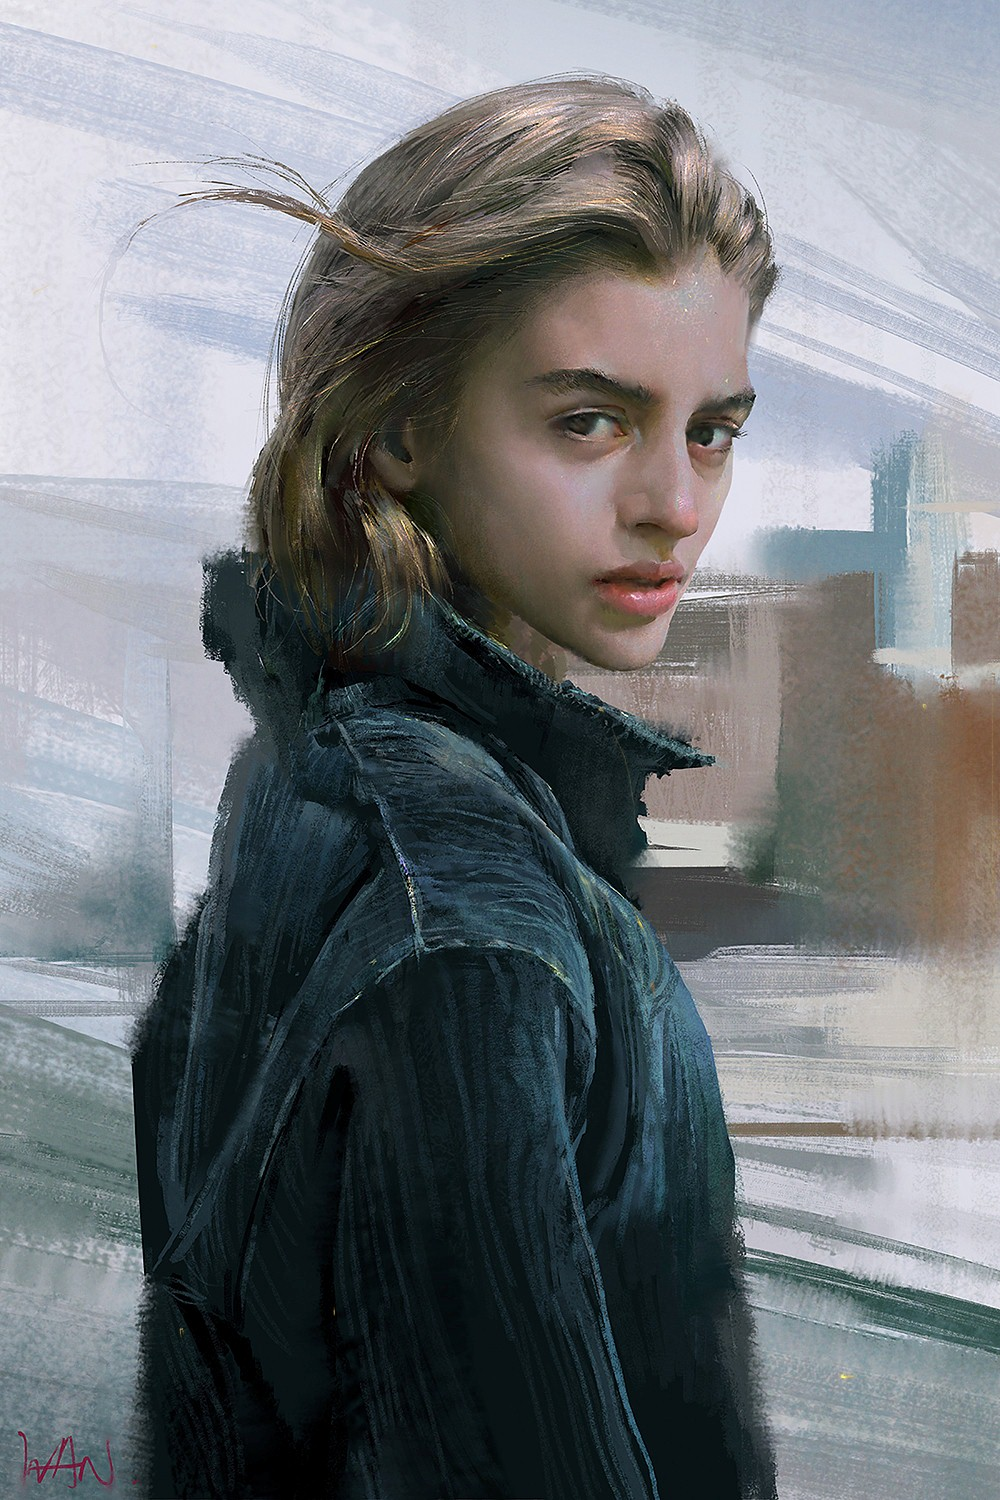 Ivan 小红花 | Paintable.cc Digital Painting Inspiration - Learn the Art of Digital Painting! #digitalpainting #digitalart